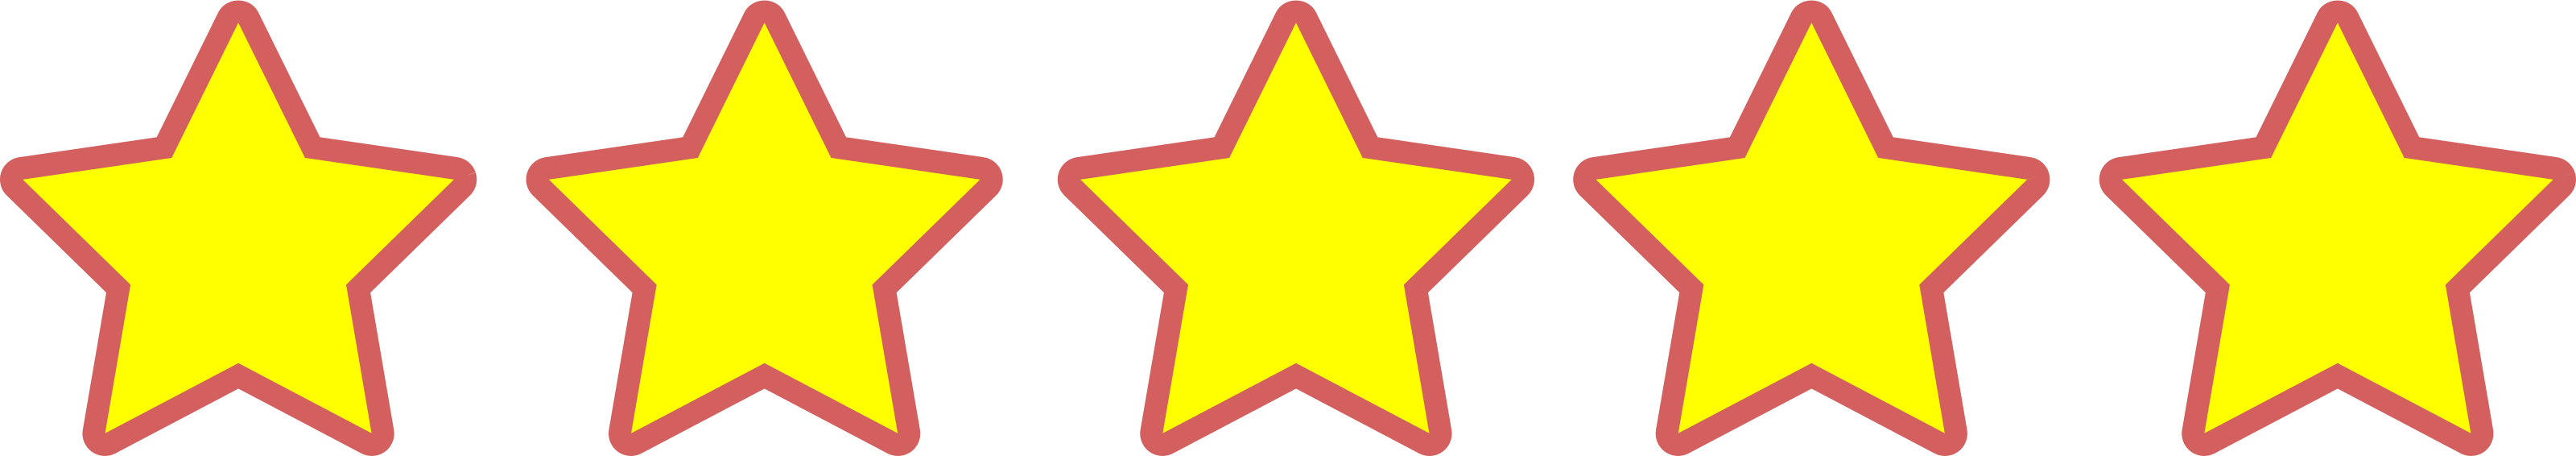 Yellow 5 star rating icon.